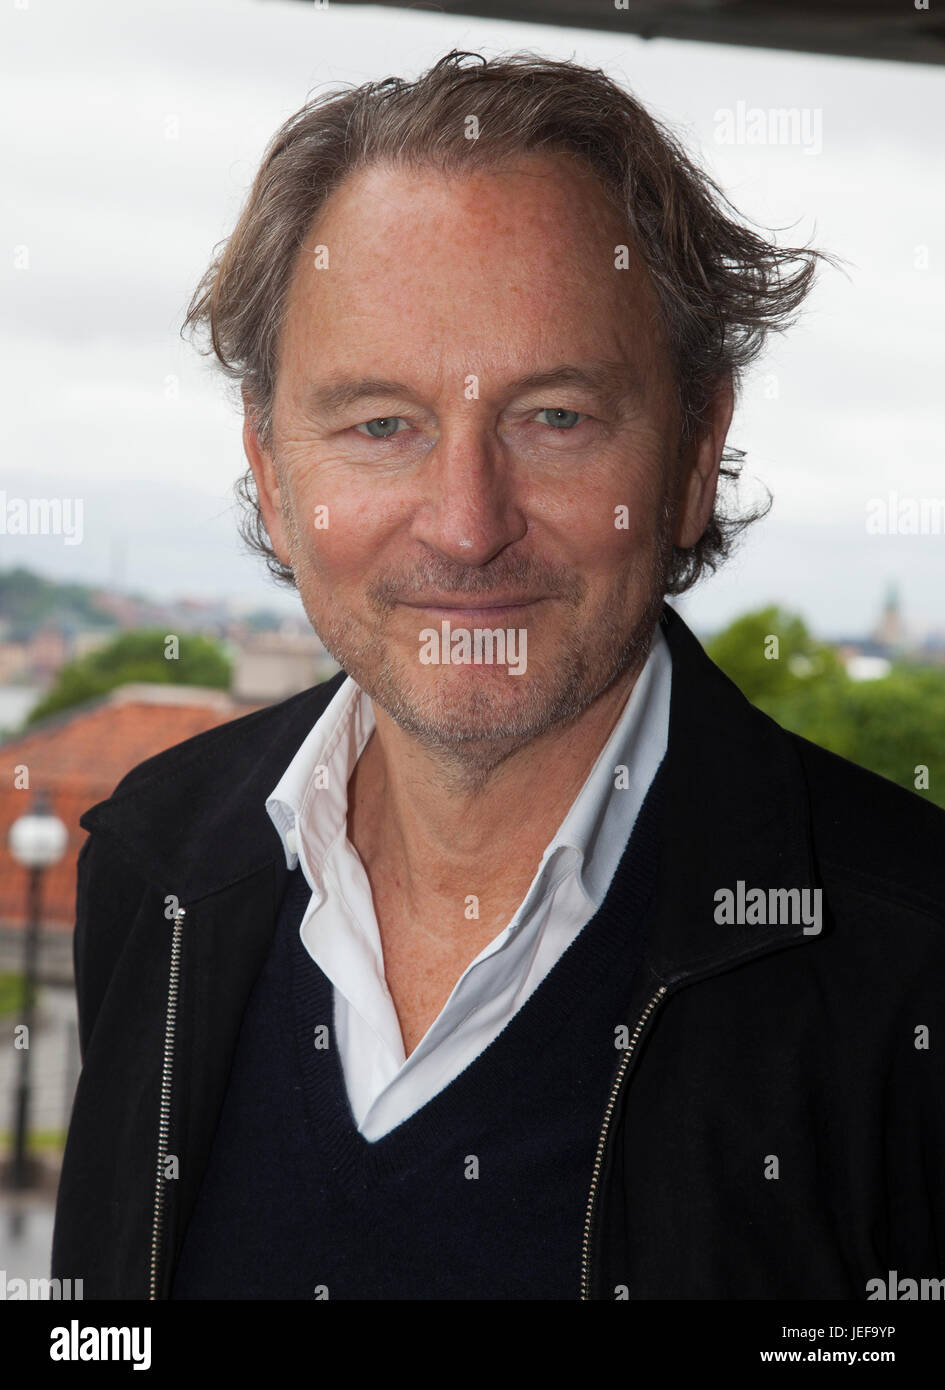 TOMAS LEDIN Swedish singer and song writer 2017 - Stock Image